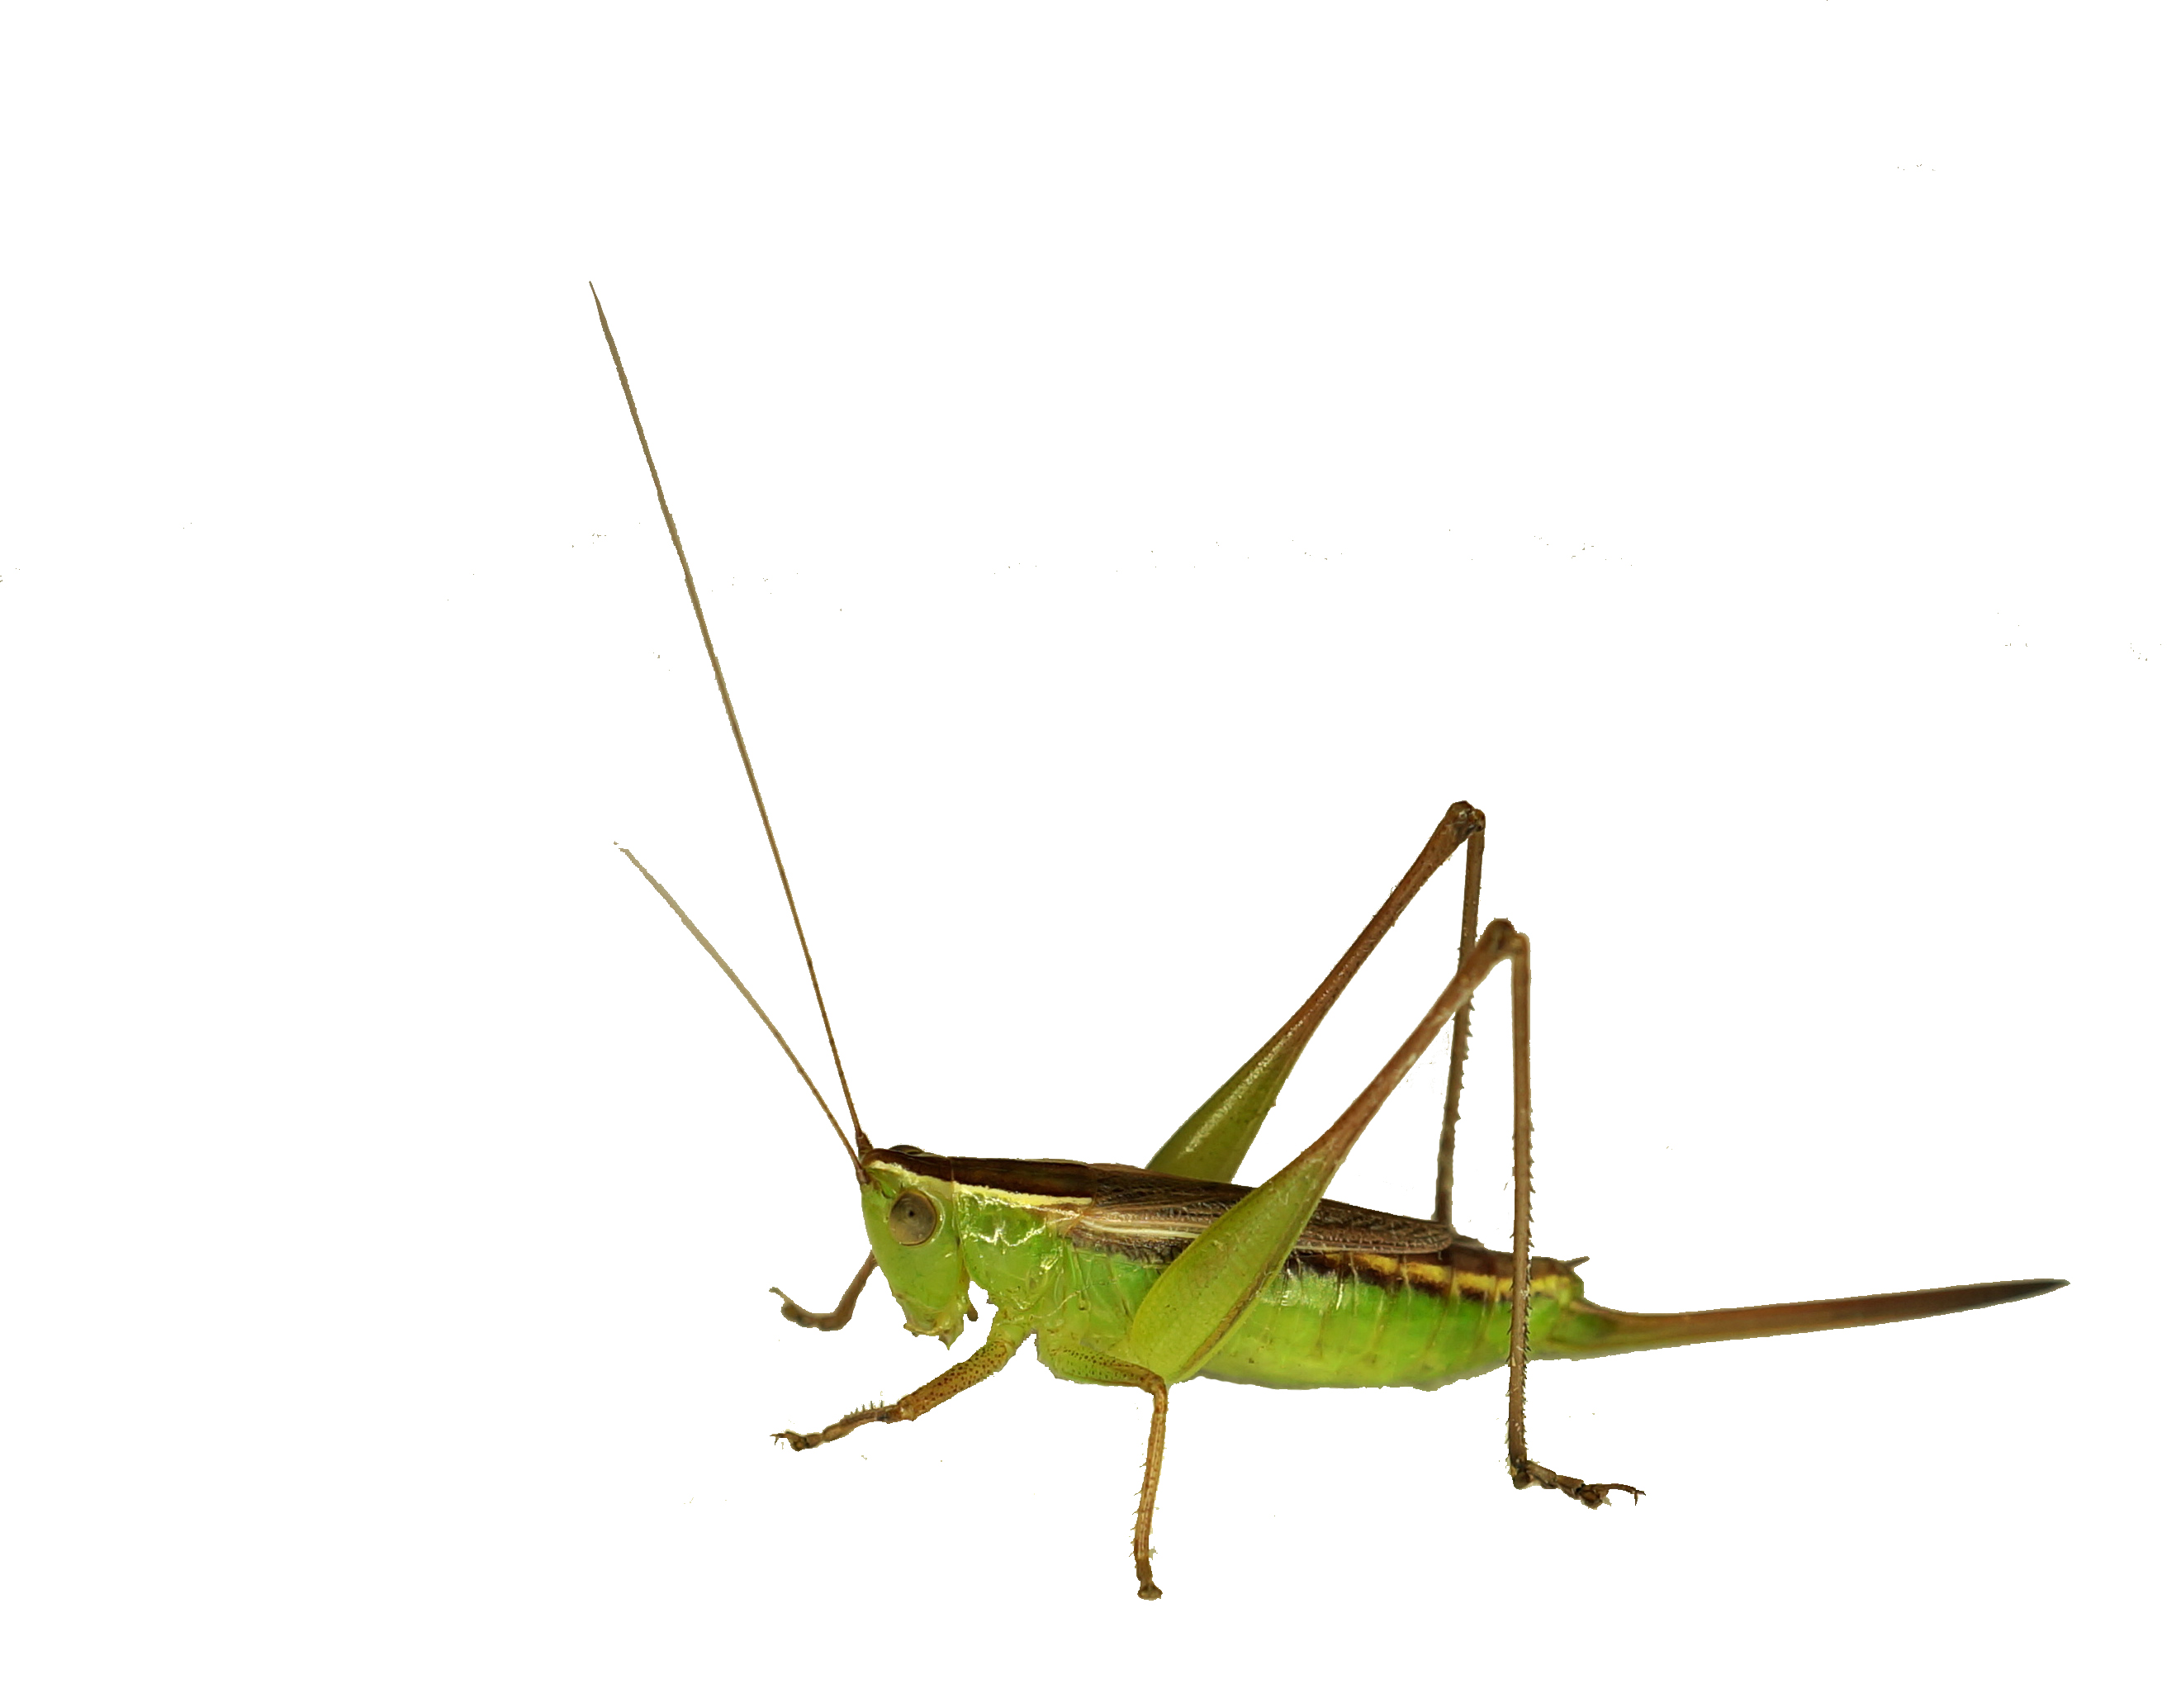 Green Grasshopper Species | Clipart Panda - Free Clipart Images